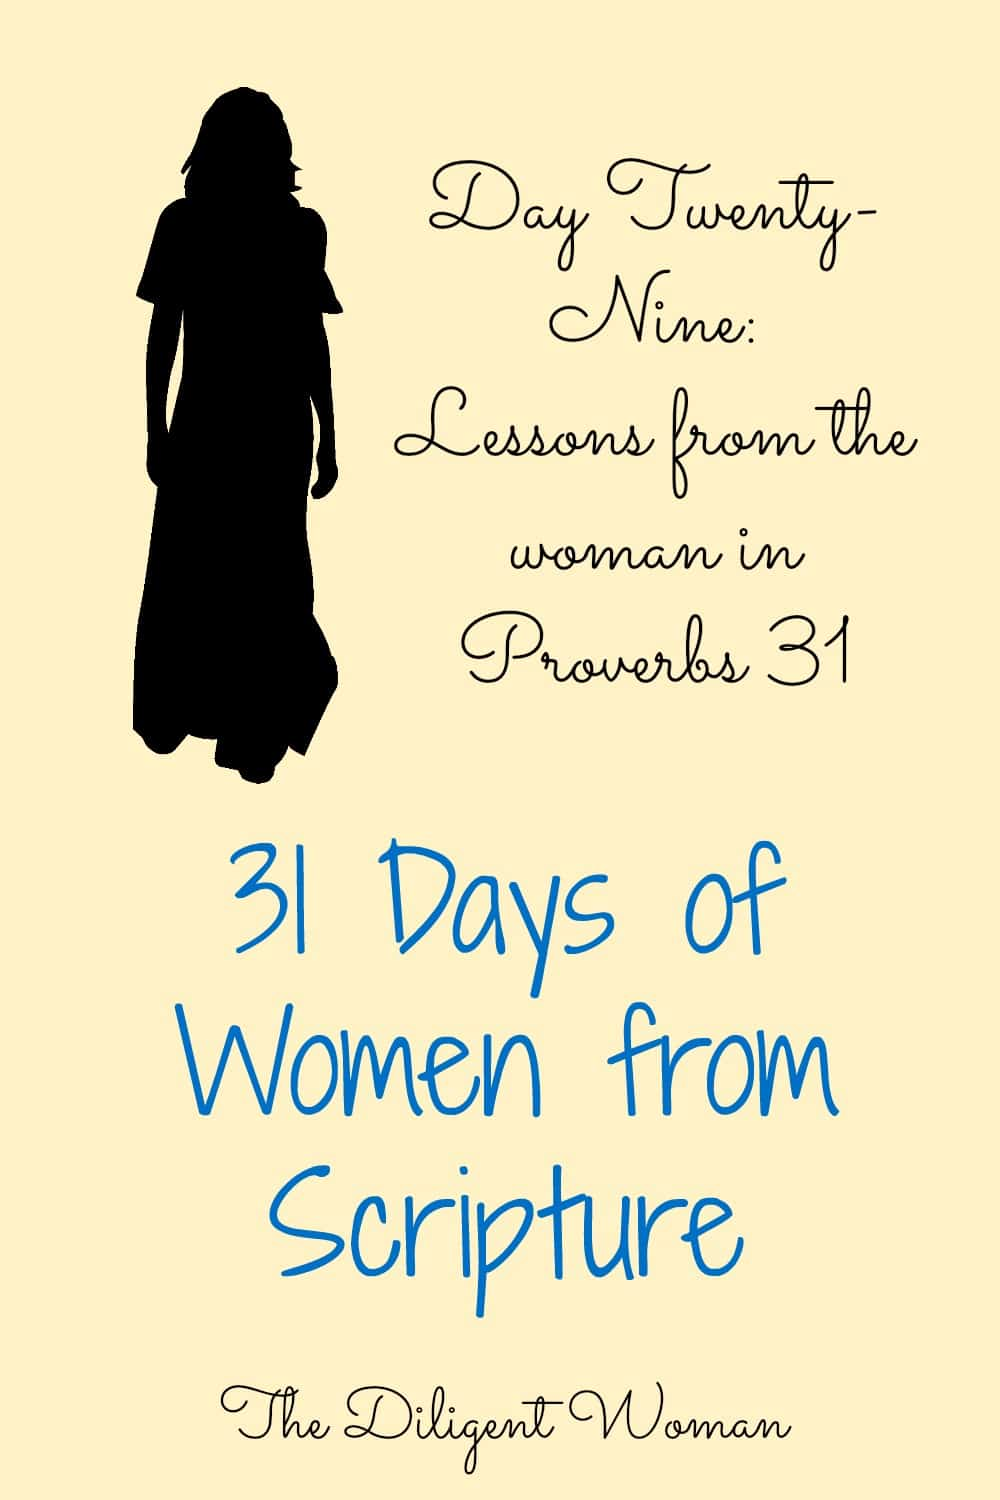 woman in Proverbs 31 - The Diligent Woman